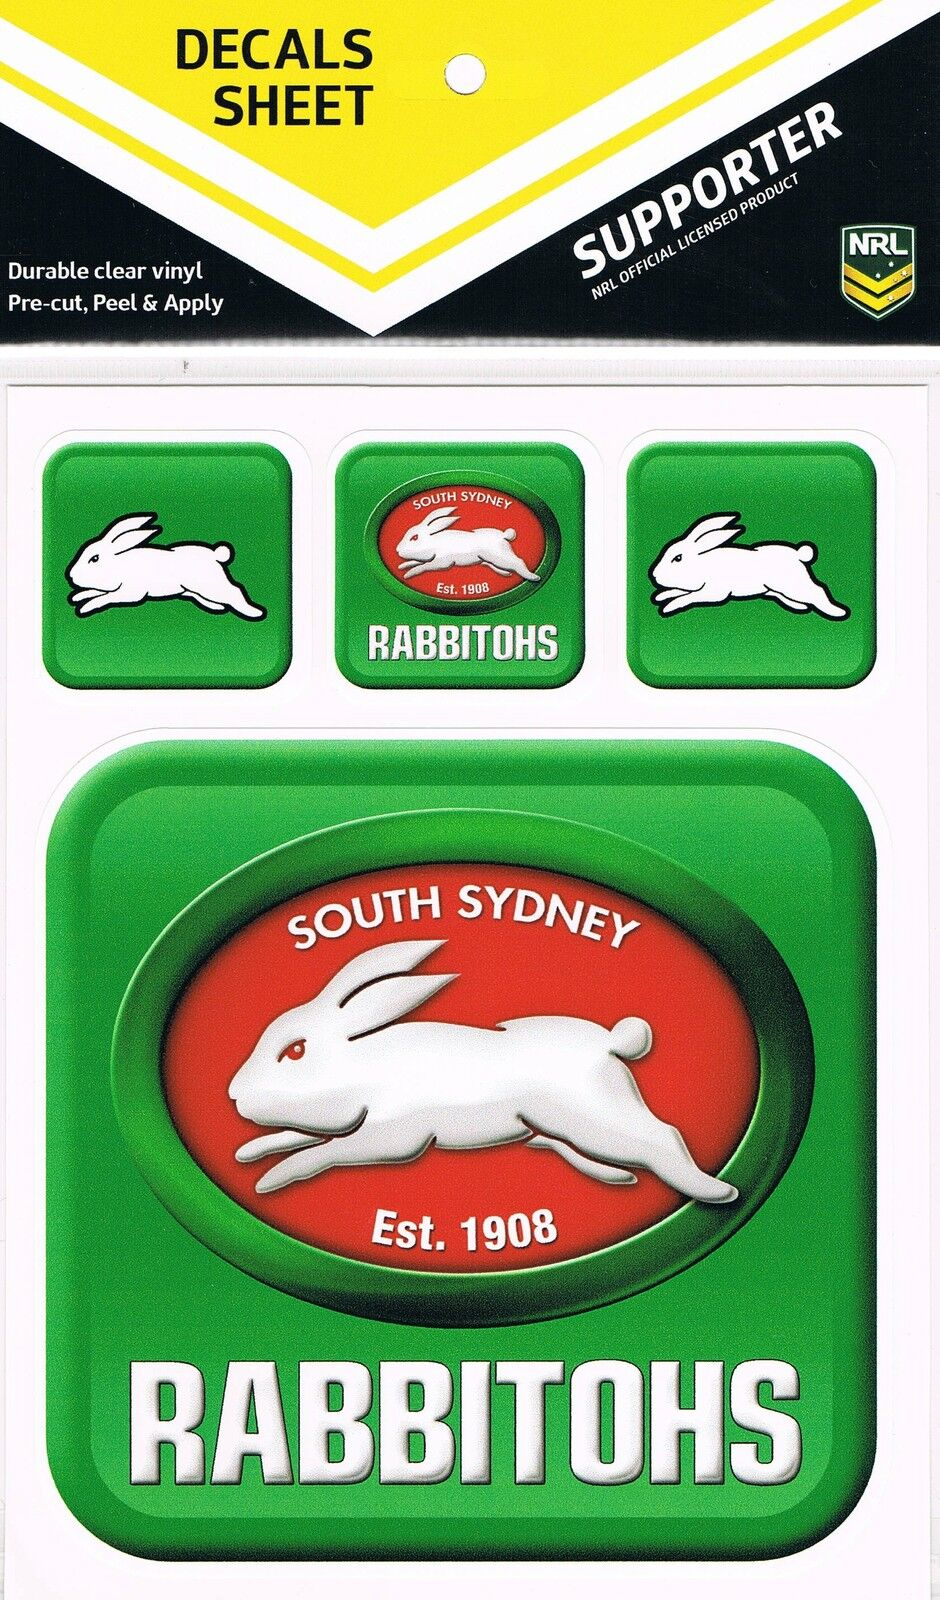 nrl south sydney rabbitohs uv outdoor car tattoo sticker sheet decal itag ebay. Black Bedroom Furniture Sets. Home Design Ideas